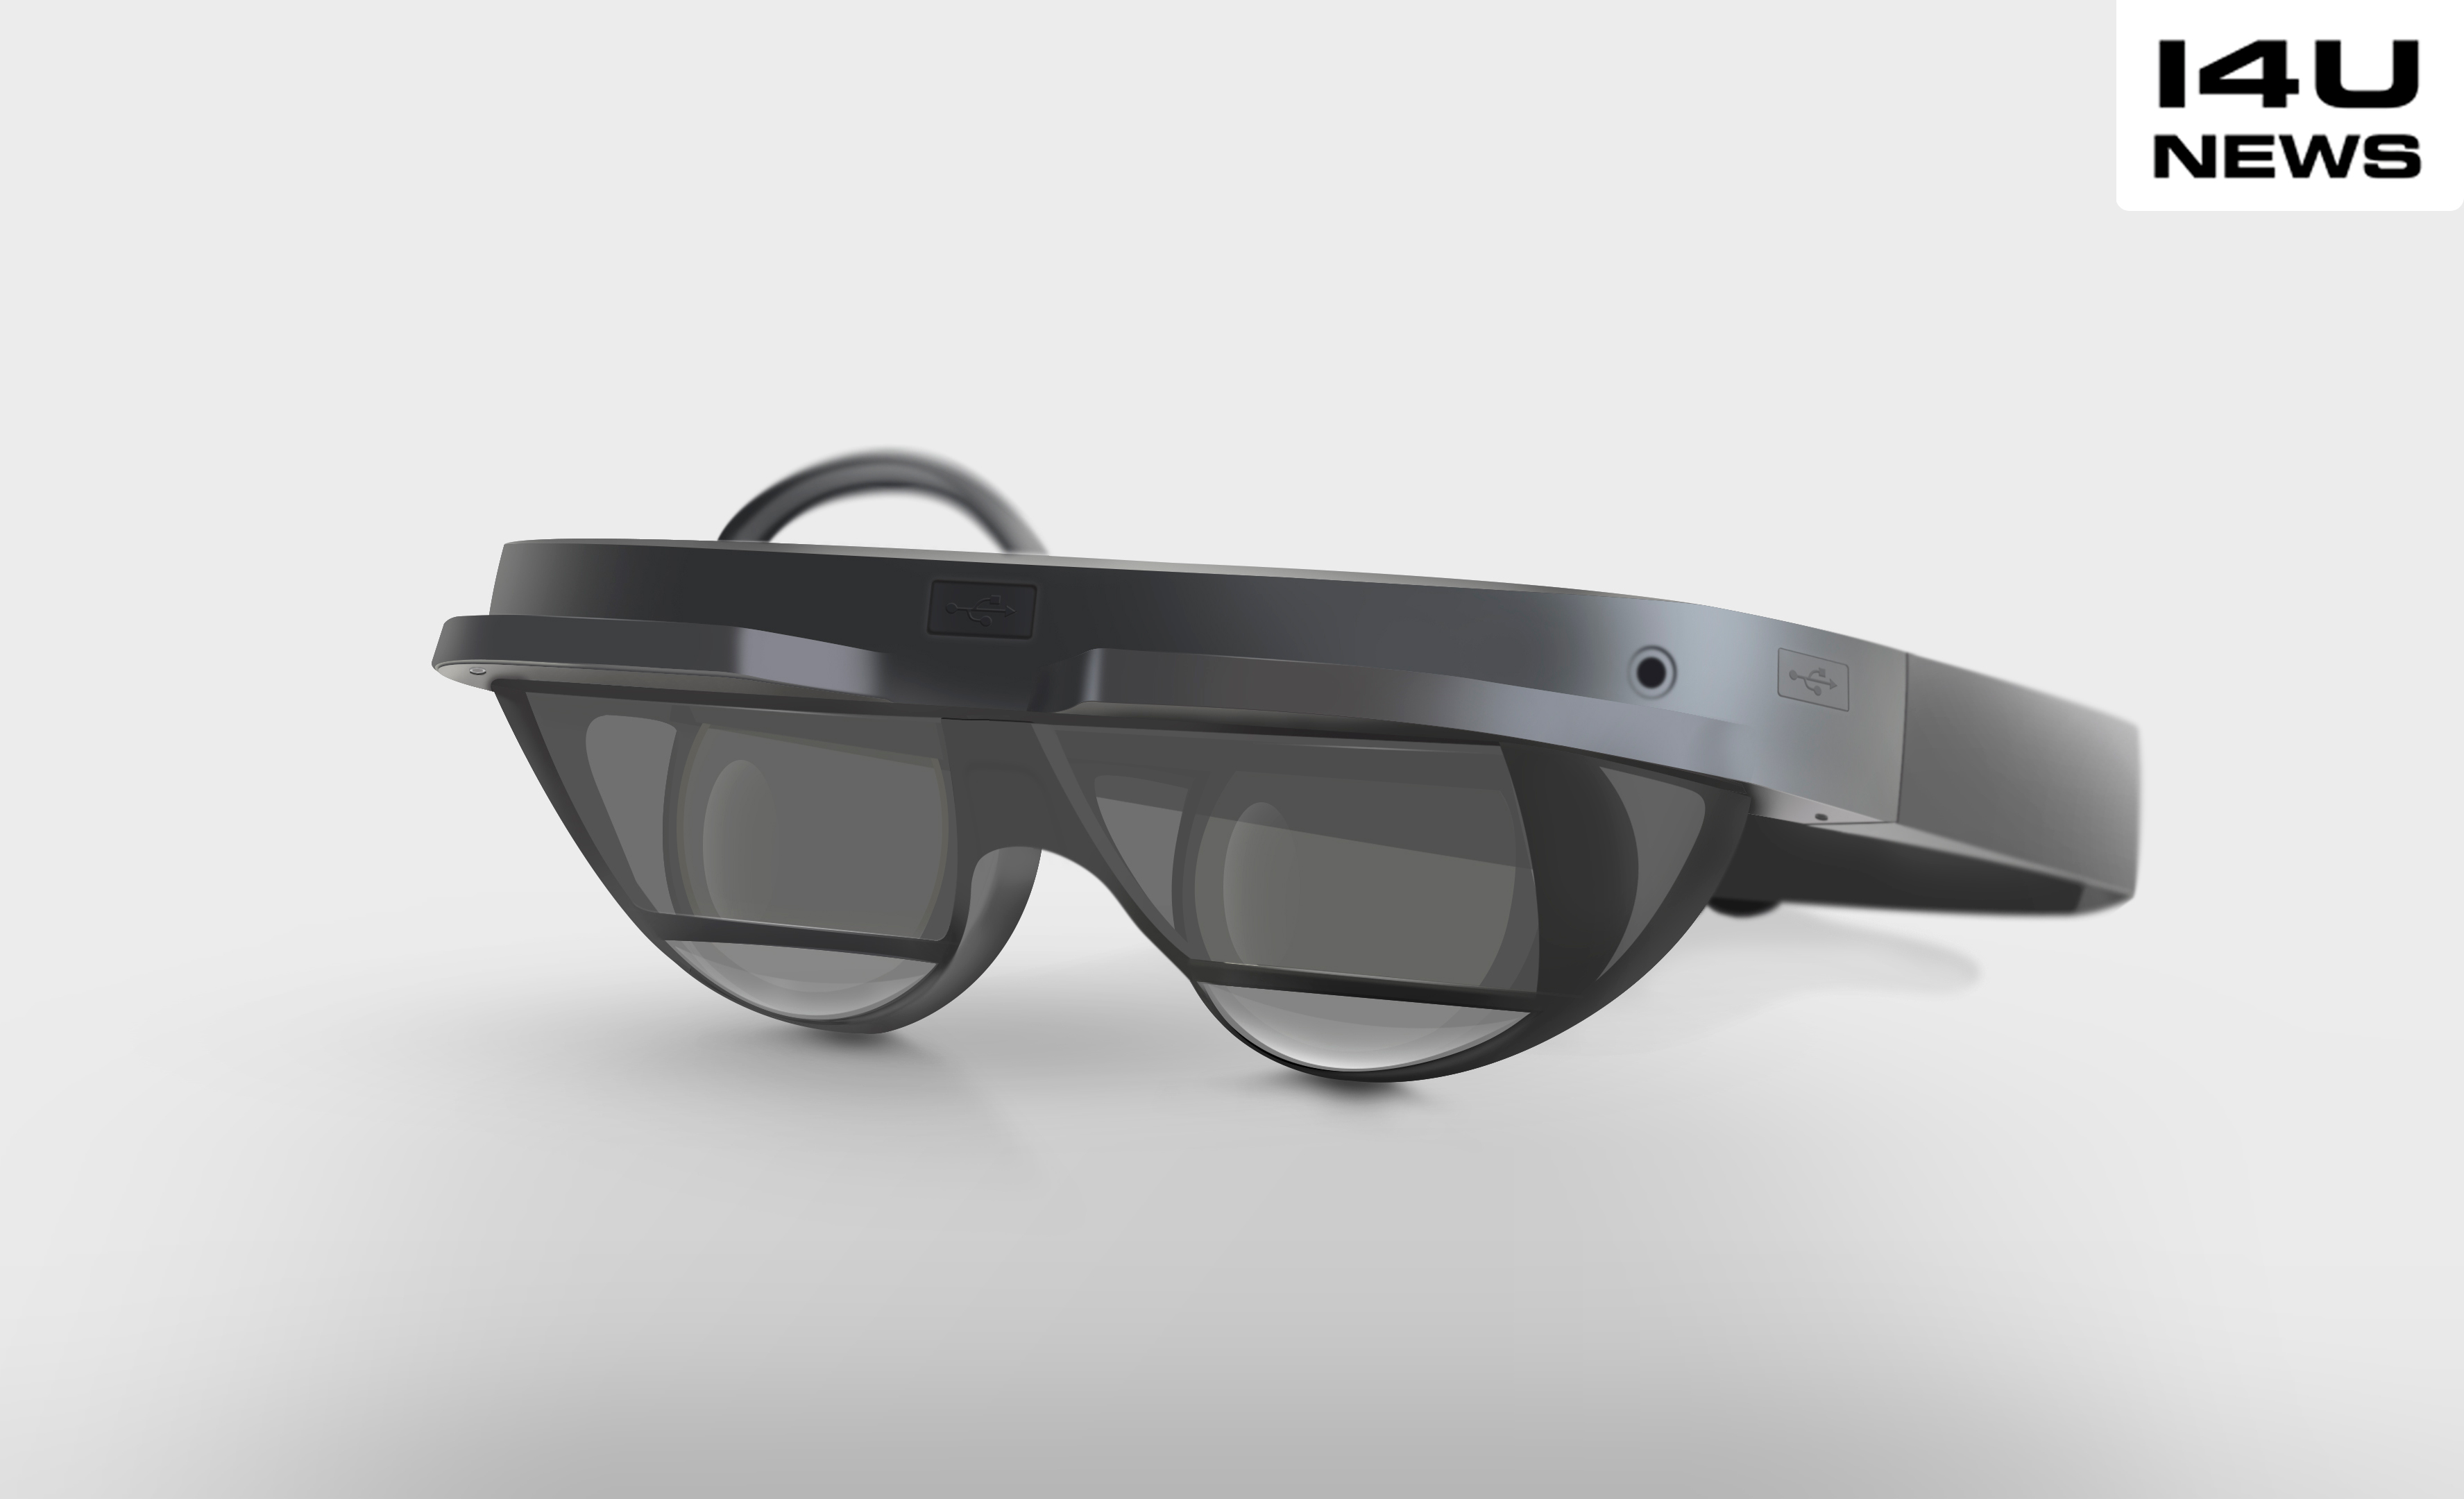 ANTVRs MIX AR Glasses Makes Microsofts HoloLens Look Very Bad